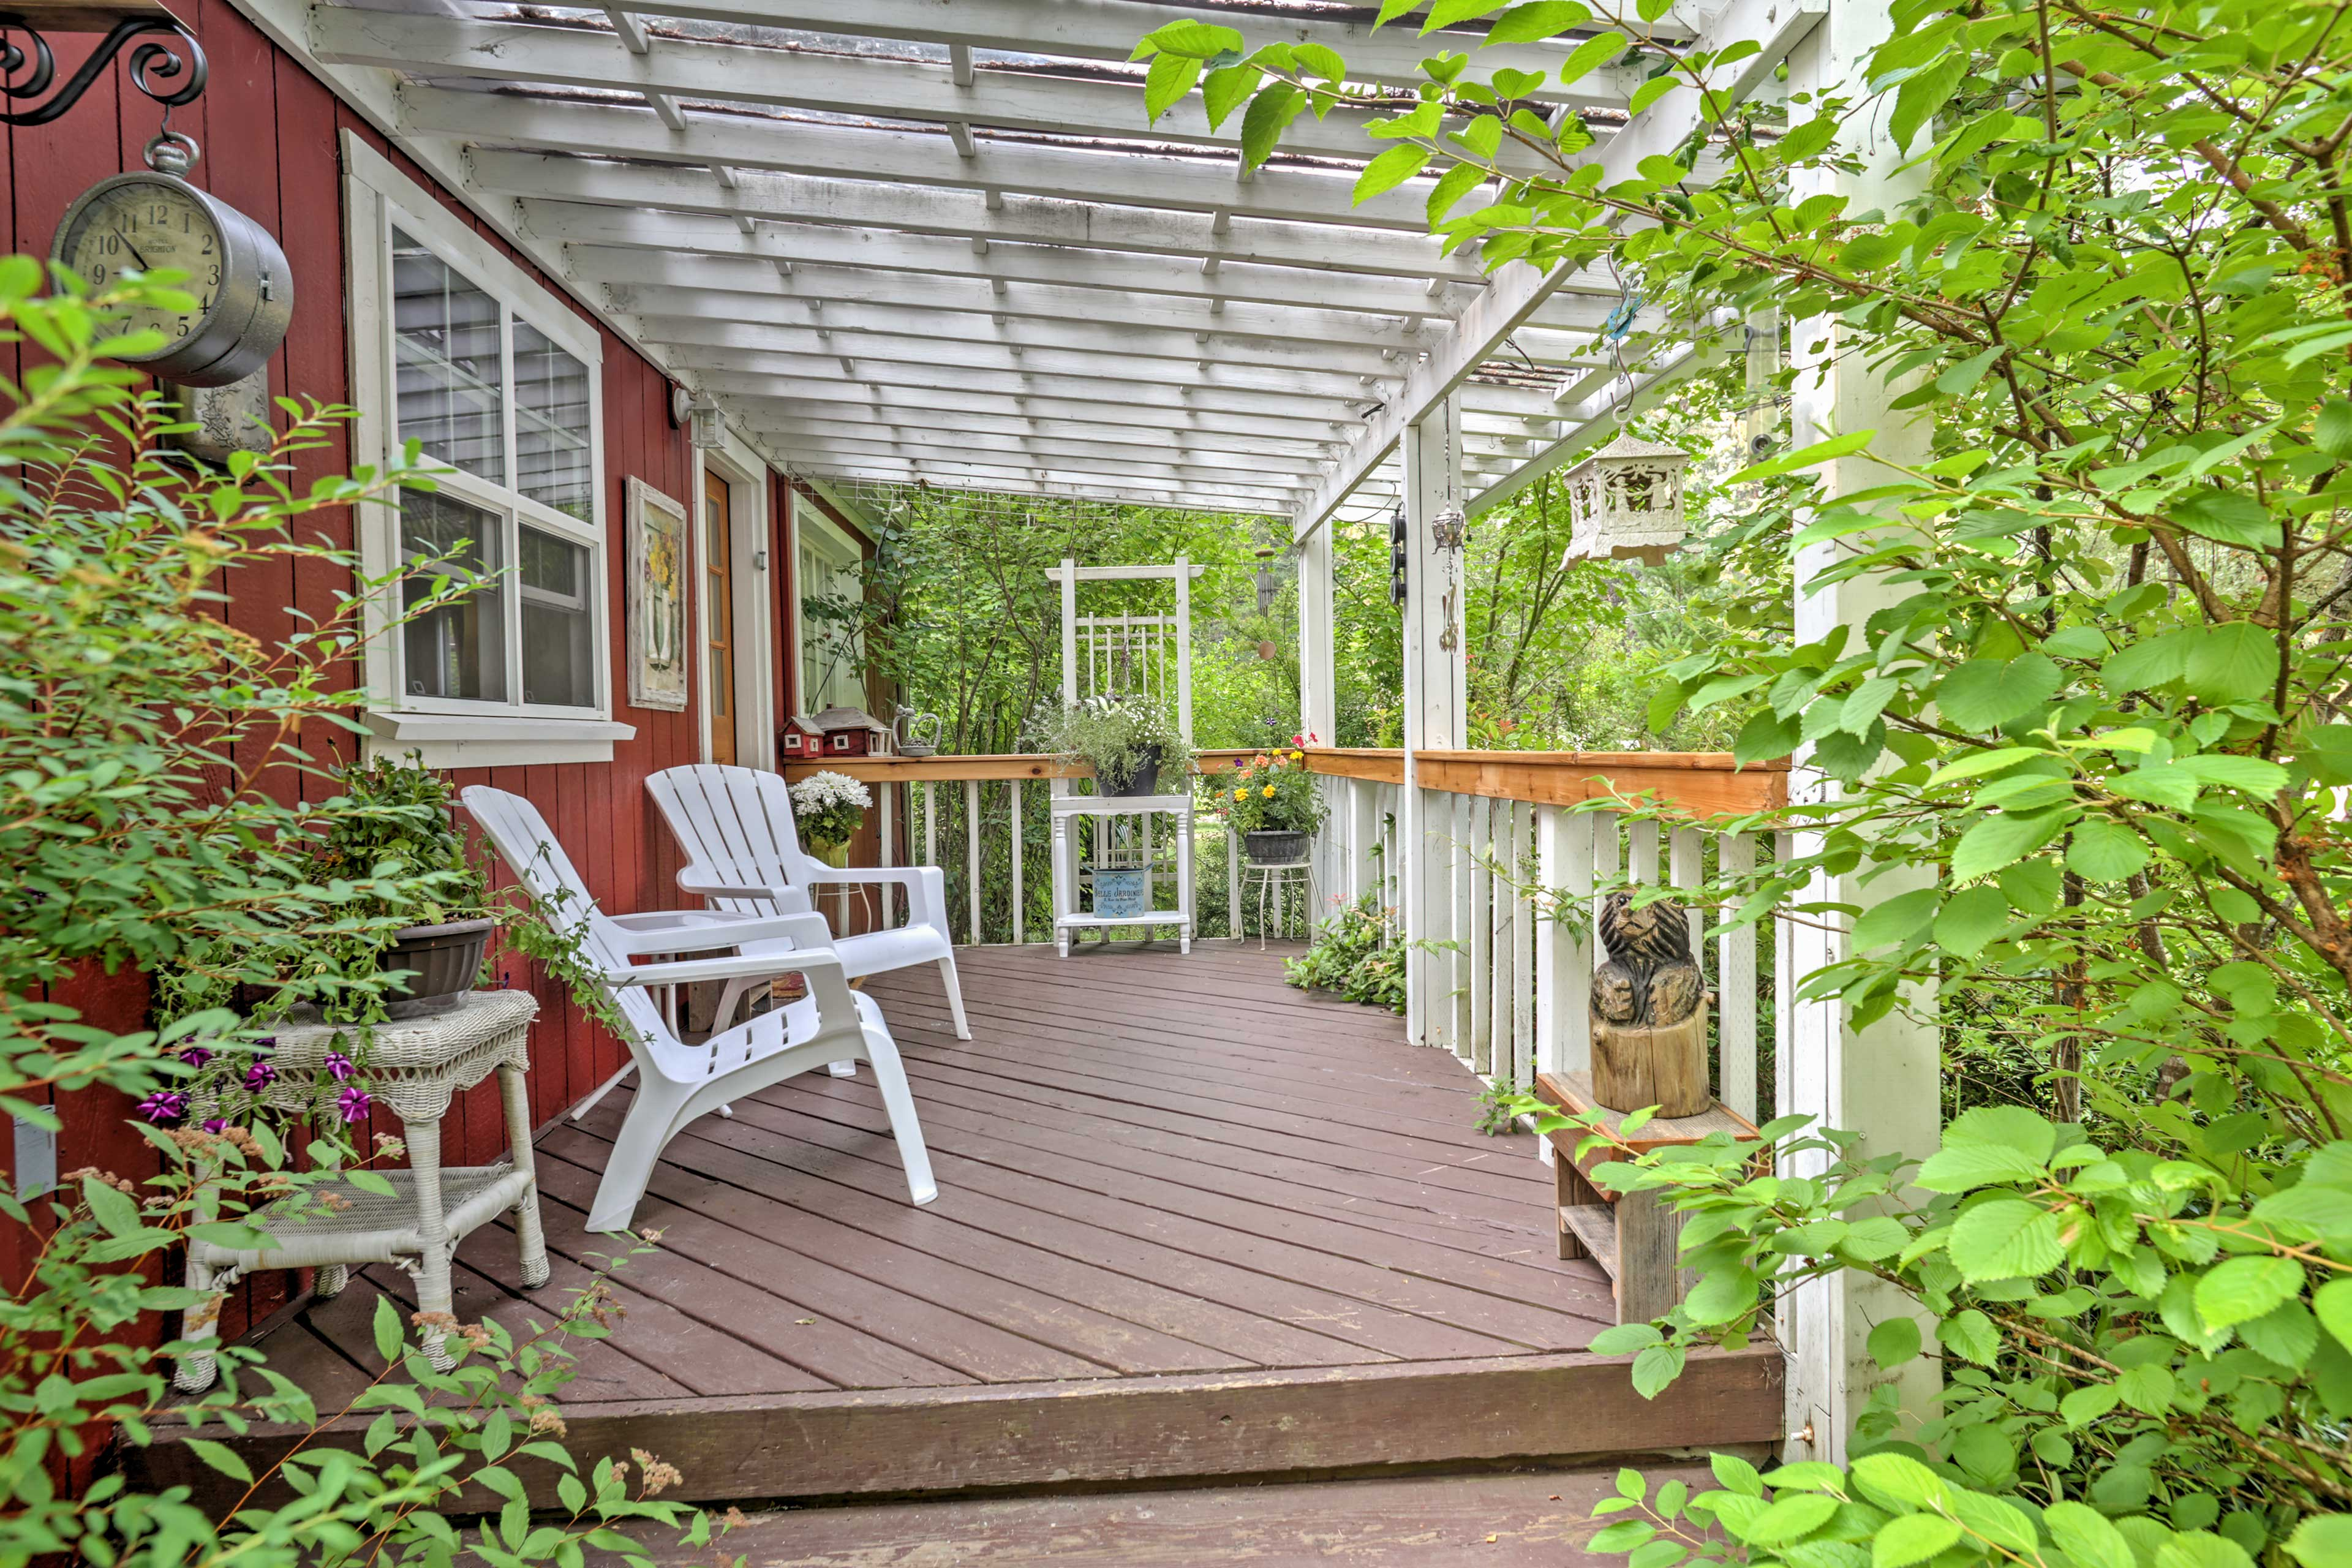 Relax with your travel group on the furnished patio.